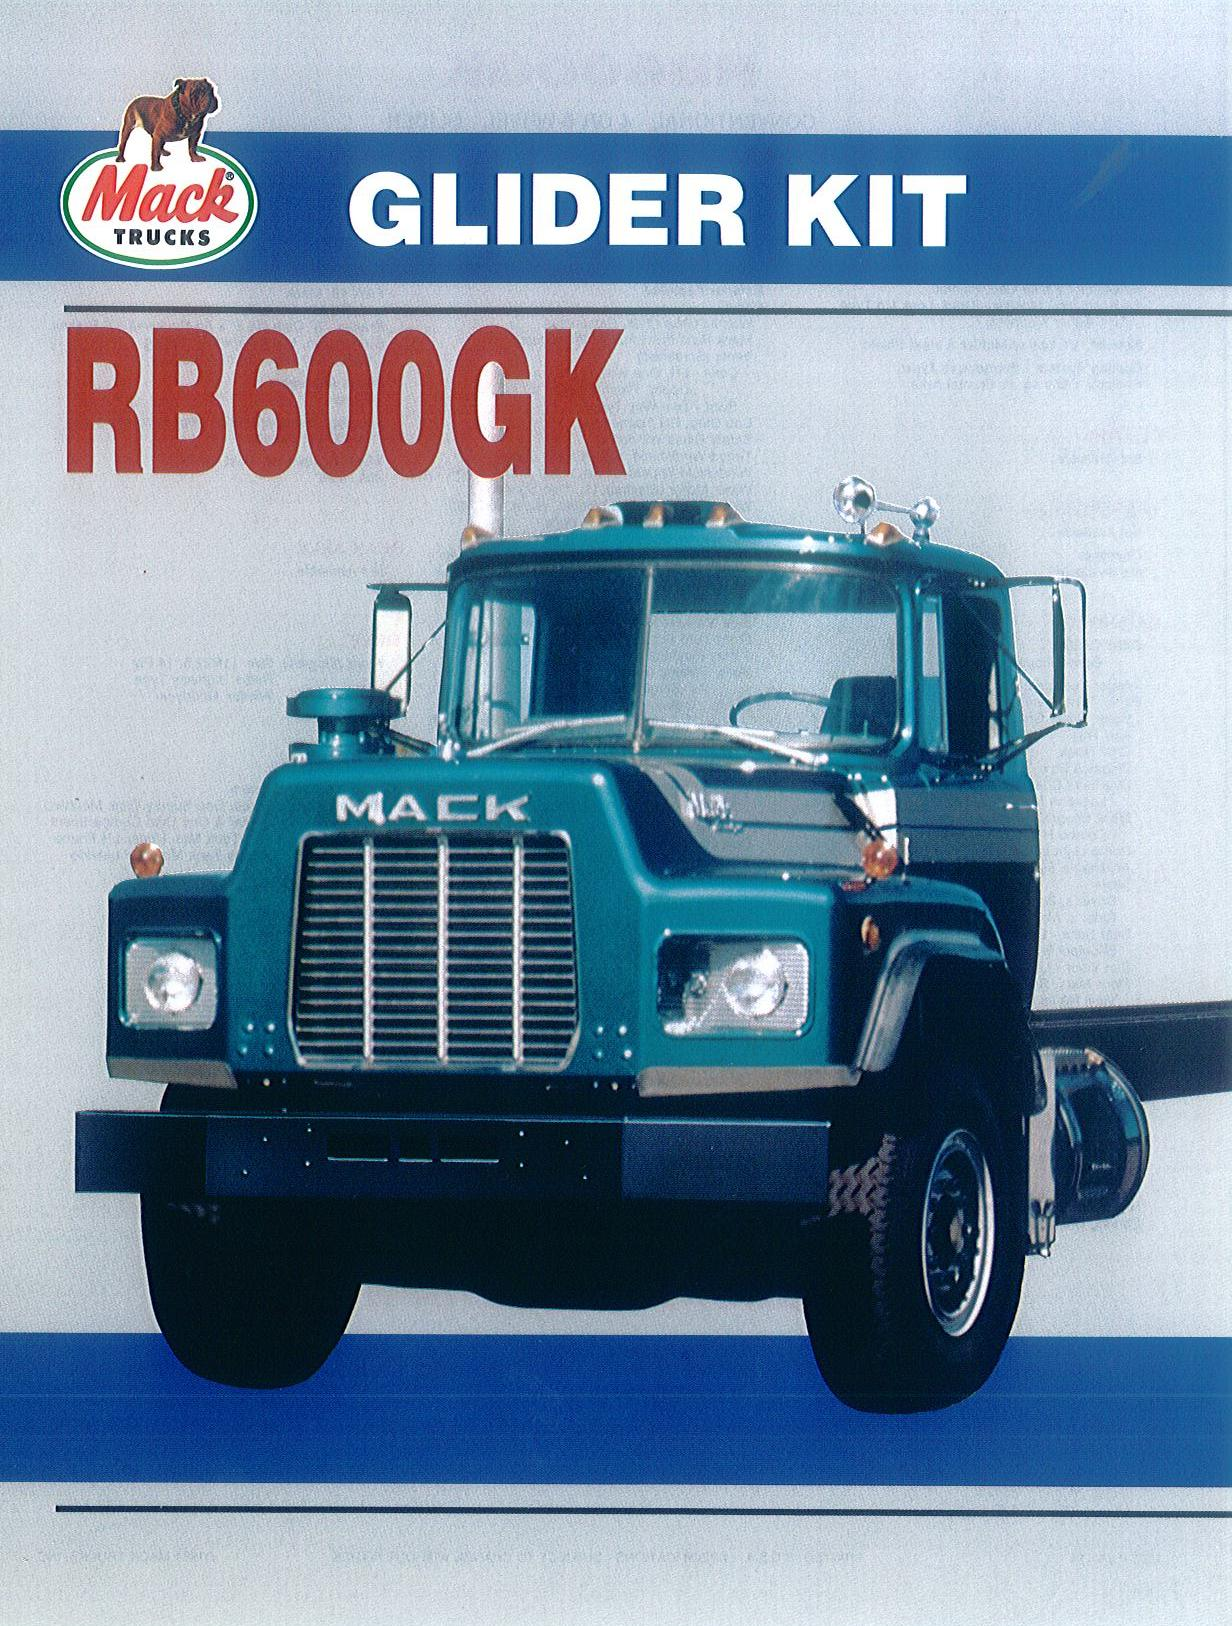 What Is A Glider Kit >> Mack Builds On Success With Enhanced Glider Kit Offerings Trucking